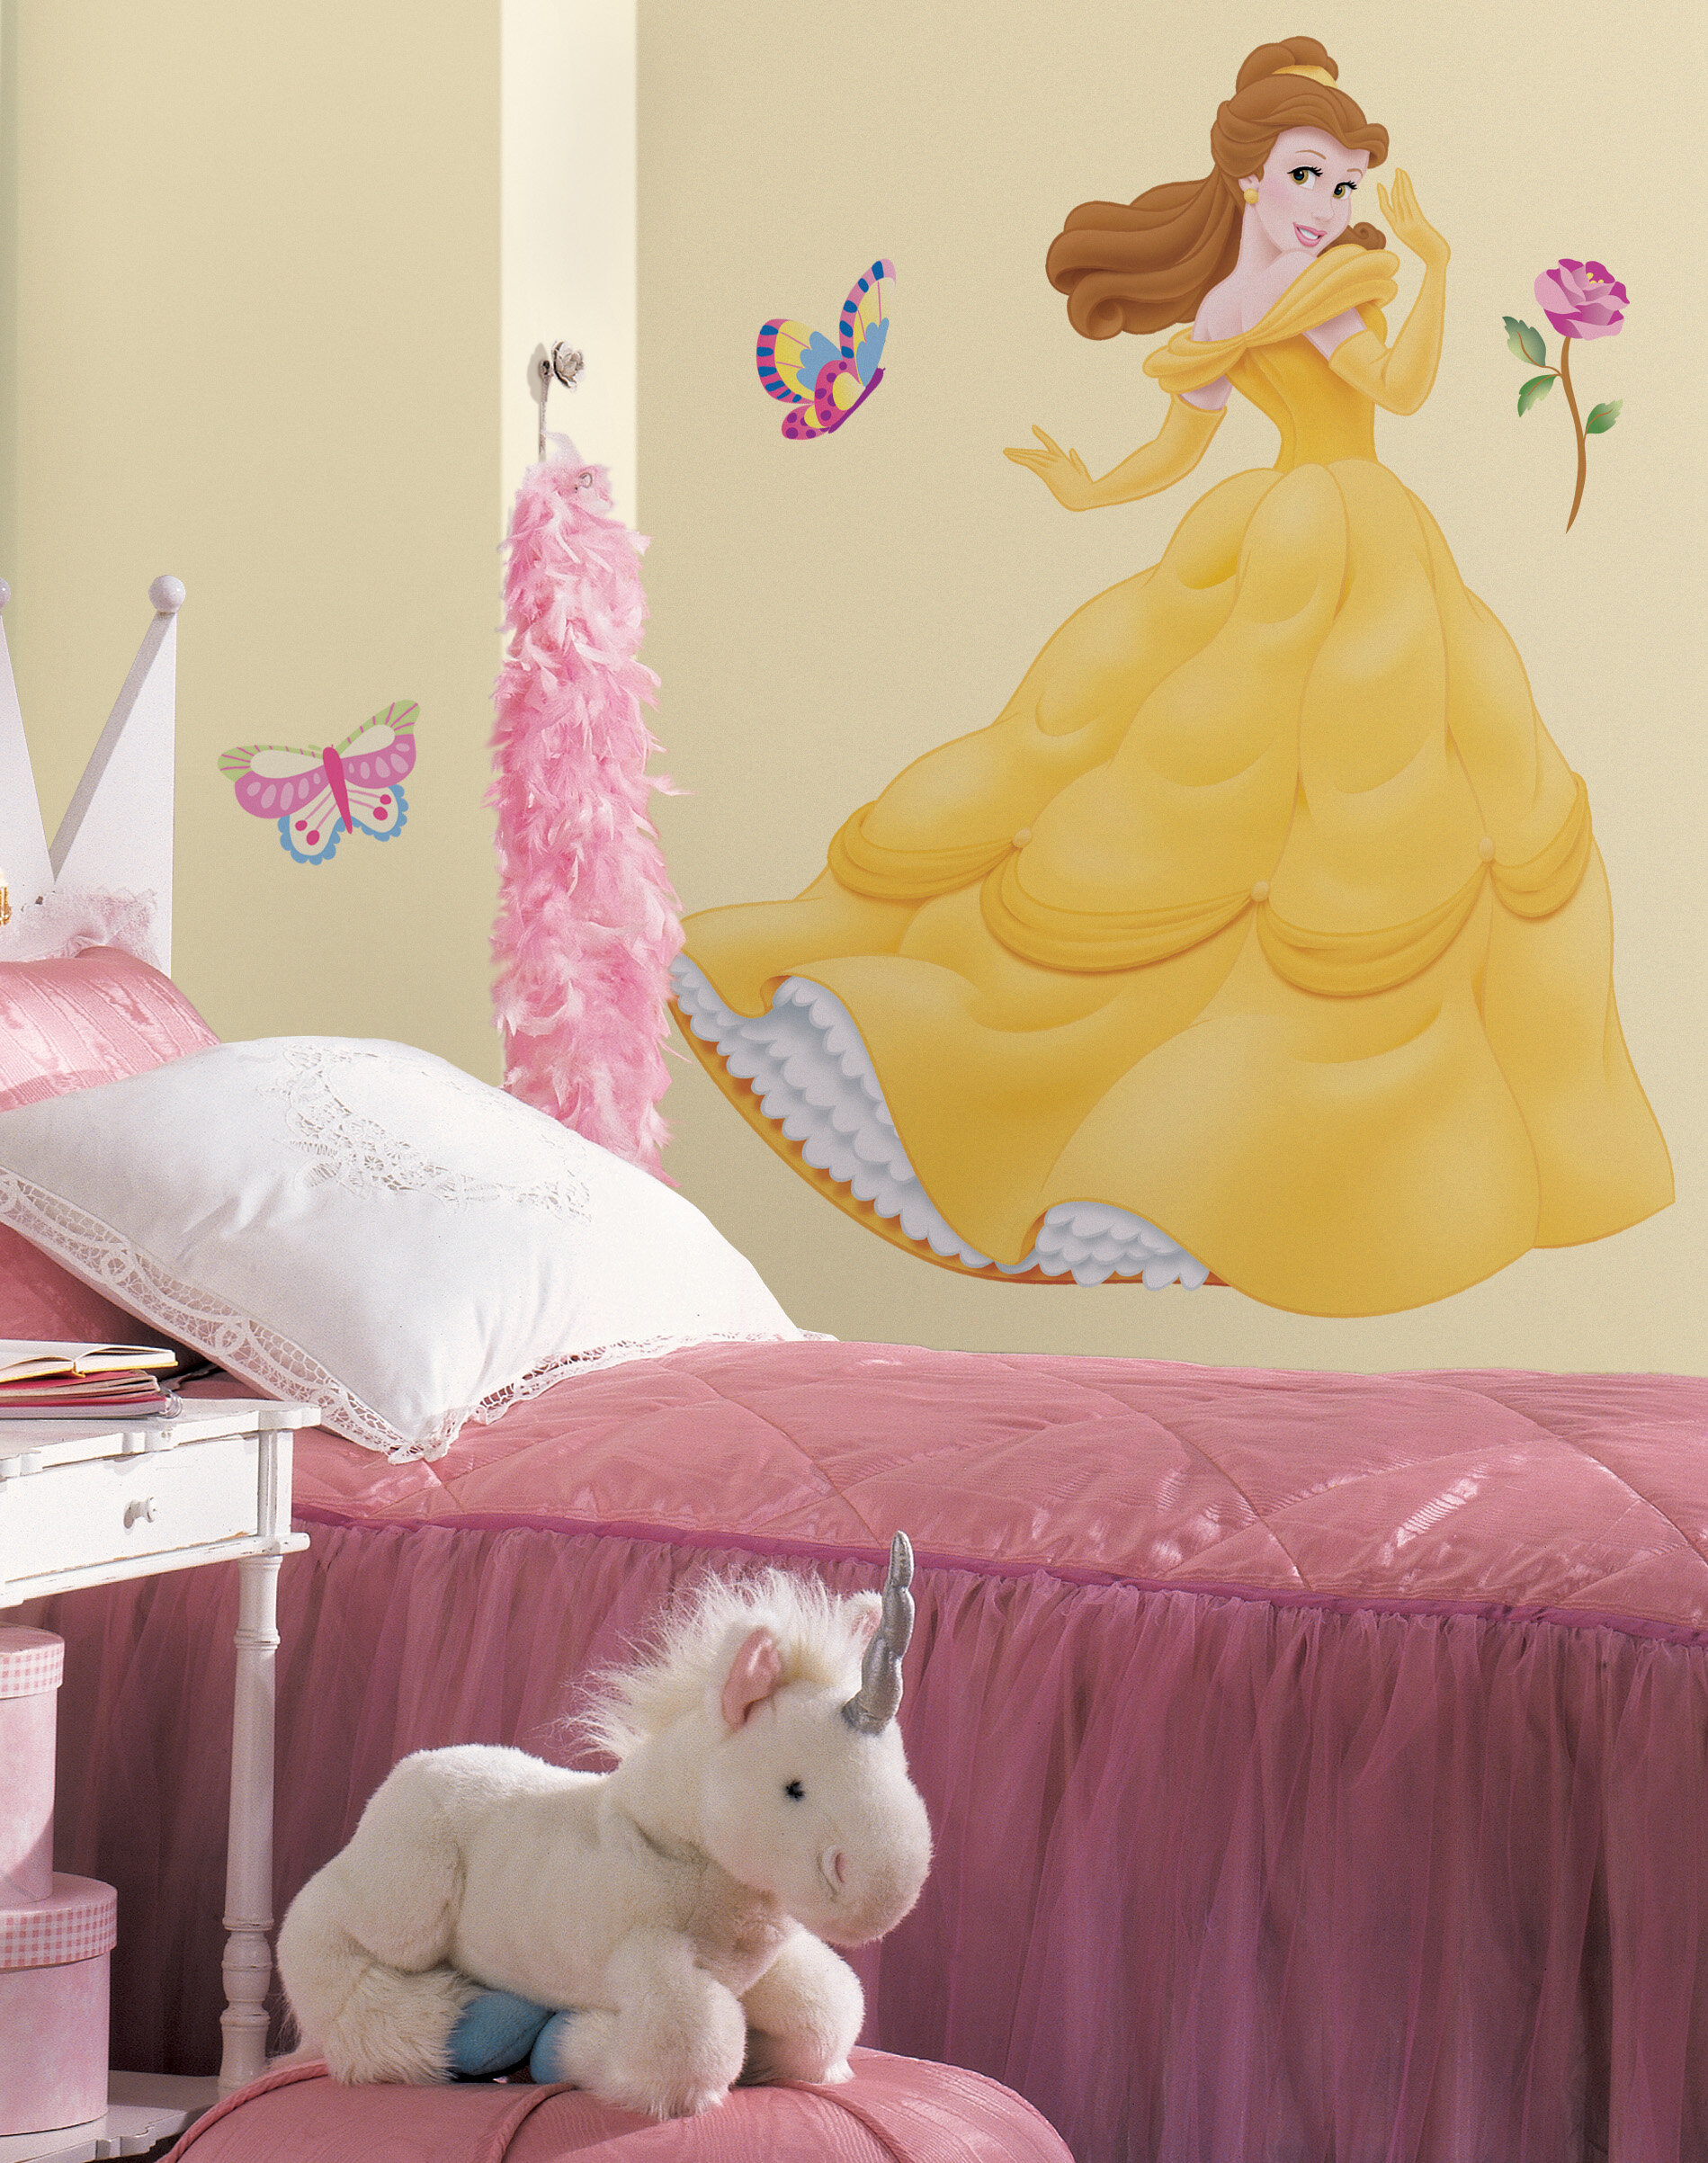 Wallhogs Disney Belle Cutout Wall Decal | Wayfair